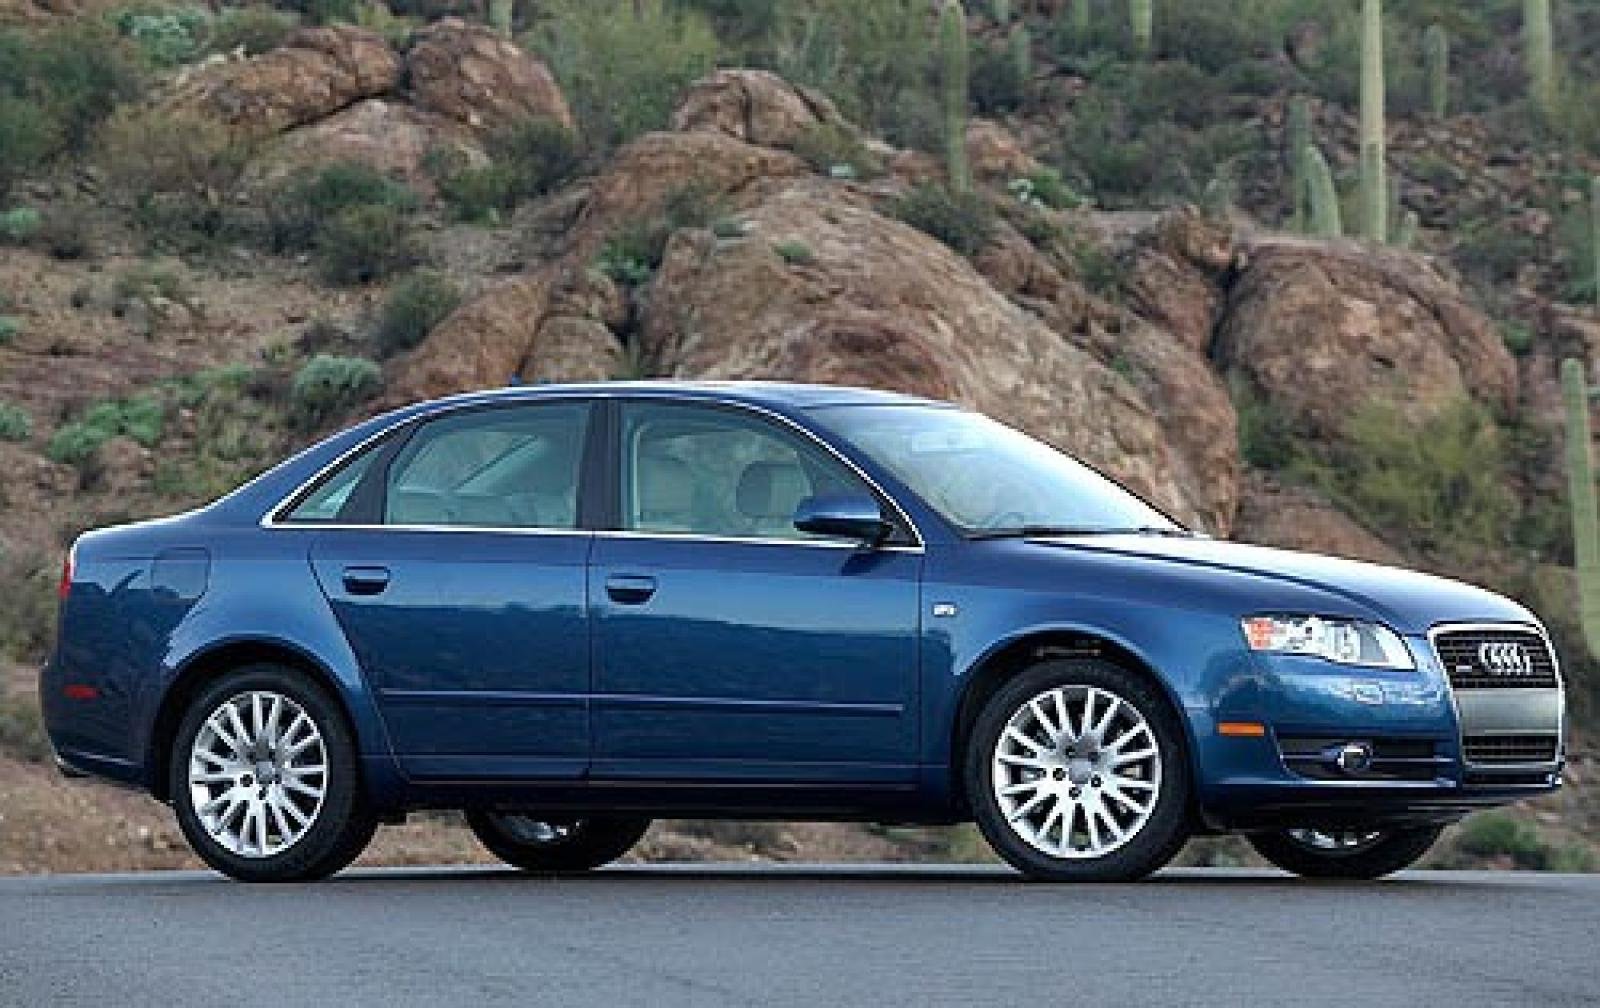 2005 audi a4 information and photos zombiedrive. Black Bedroom Furniture Sets. Home Design Ideas